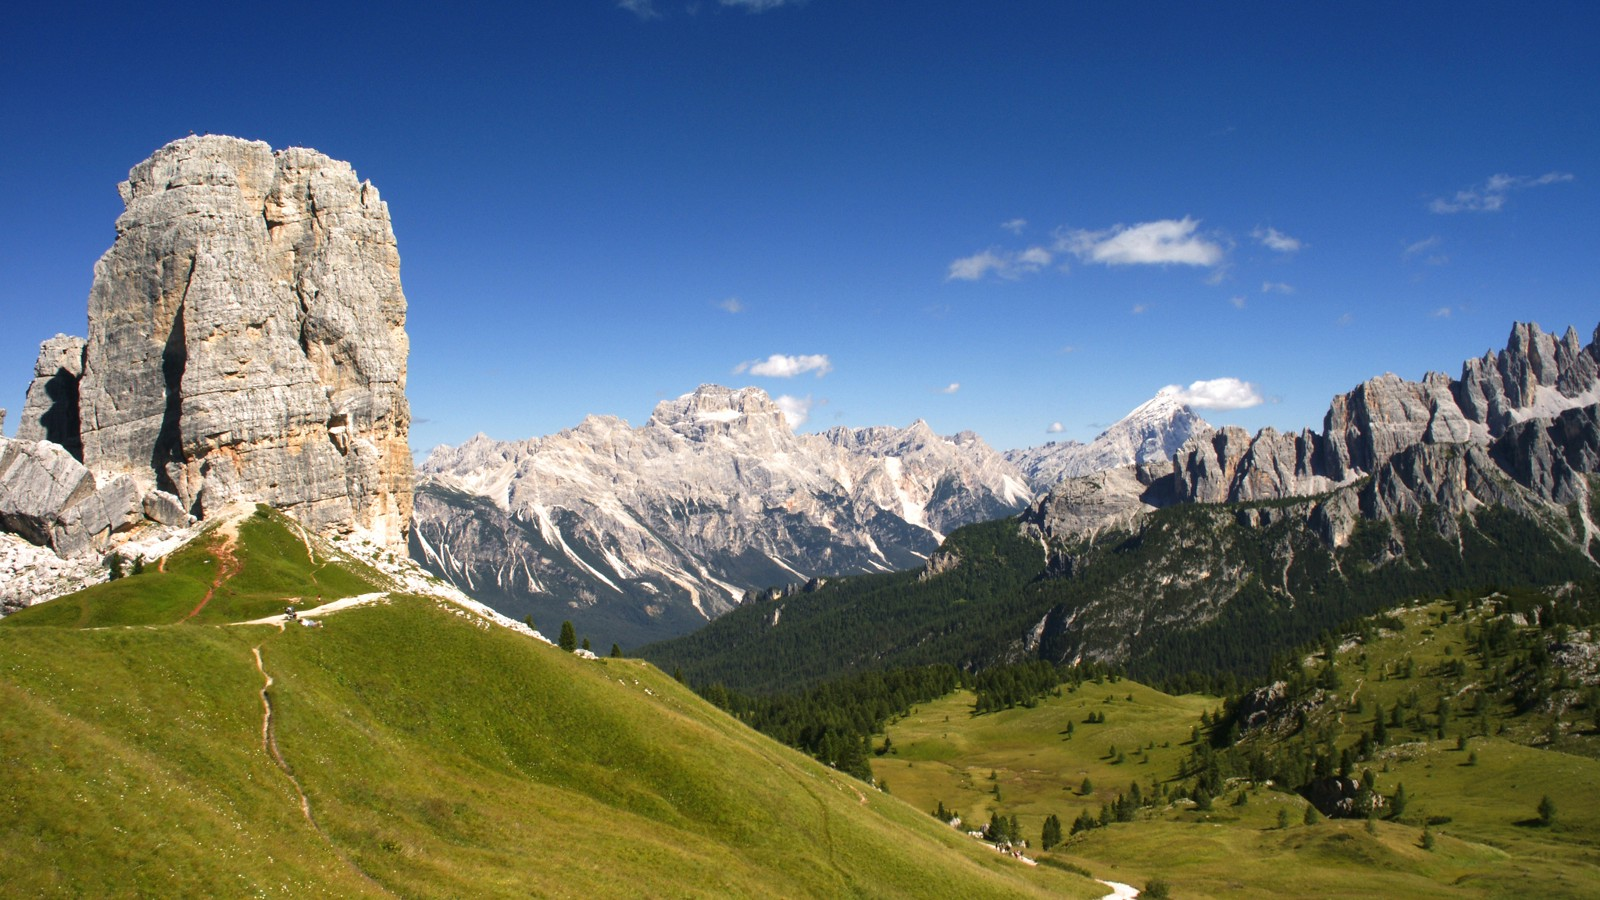 The Dolomites in the Italian Alps